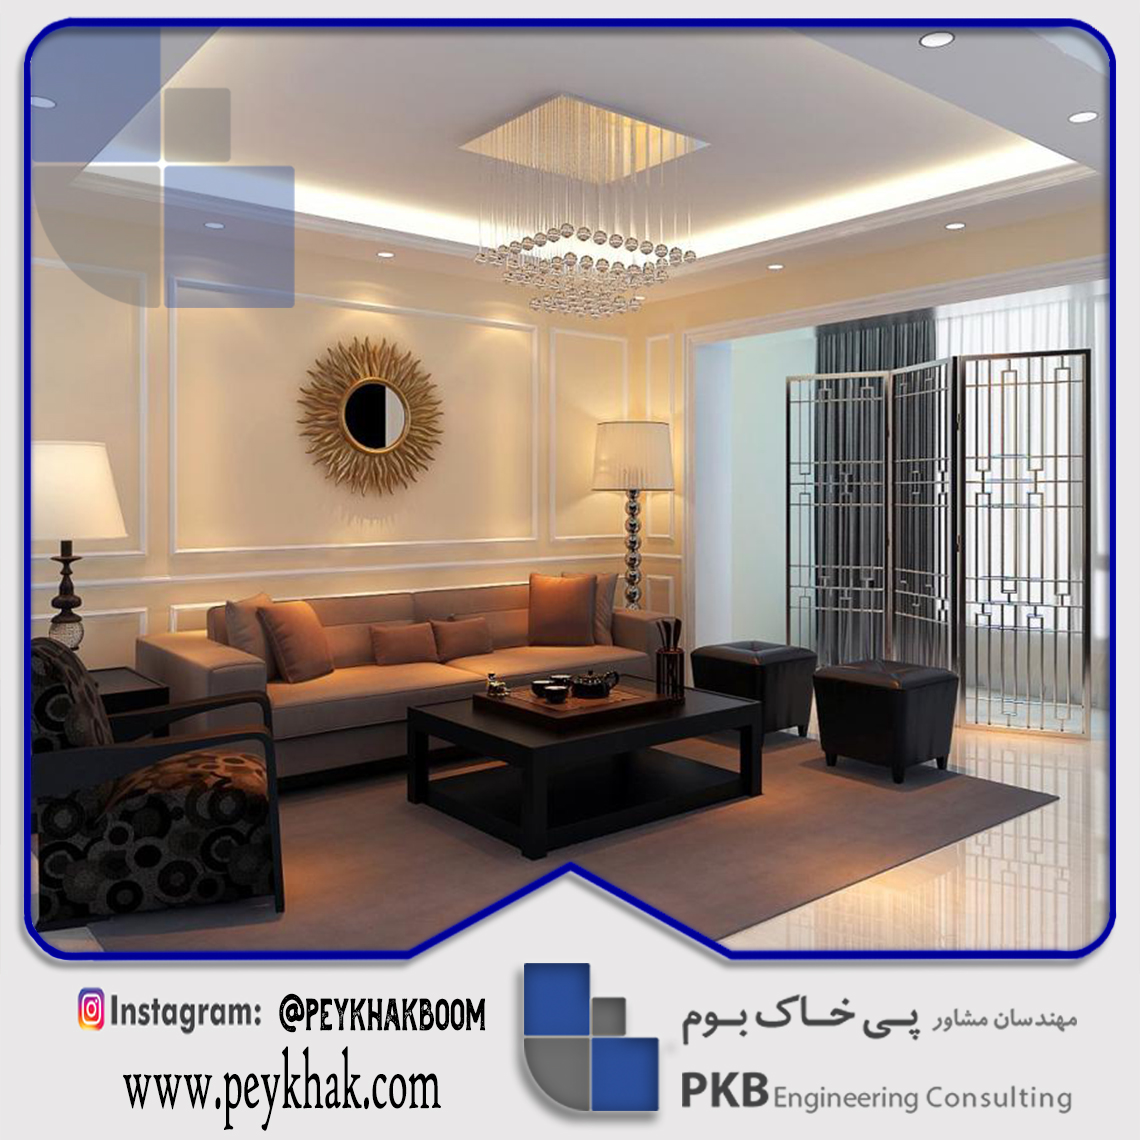 What Are The Best Models For Roof Design مهندسان مشاور پی خاک بوم